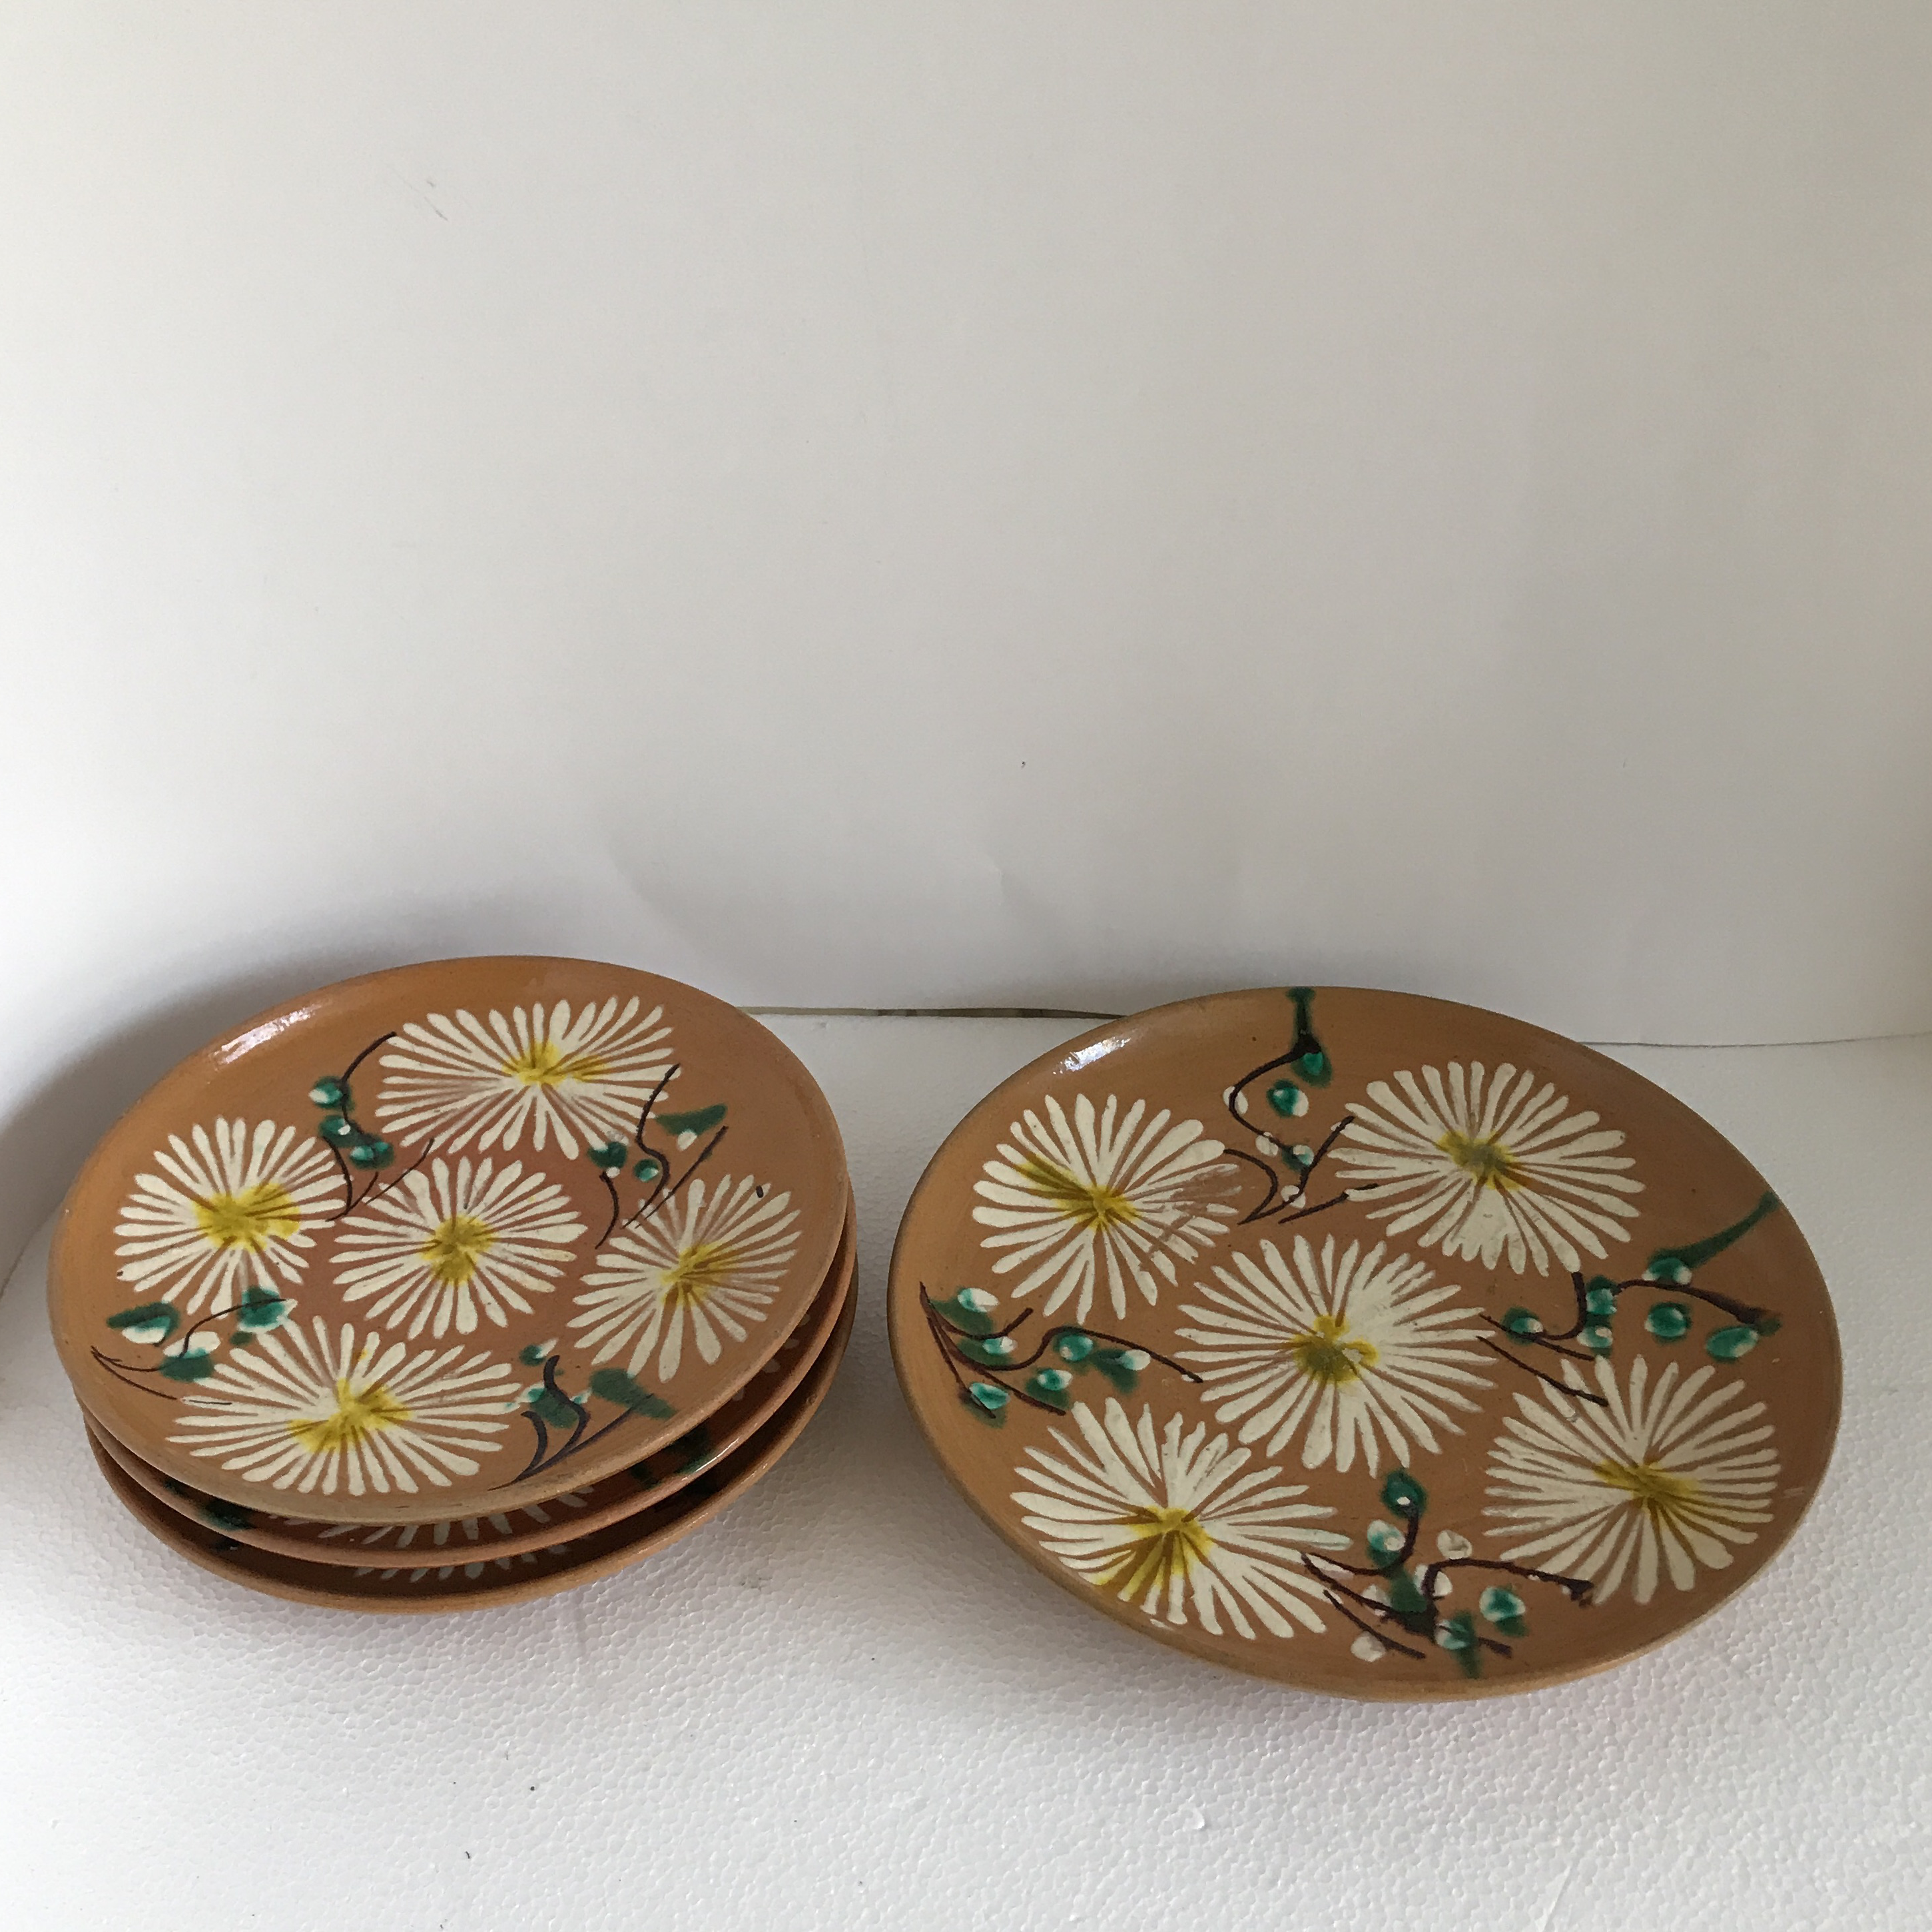 Vintage Mexican Pottery Plates Set of 4 - Image 7 of 10 : mexican plate set - pezcame.com